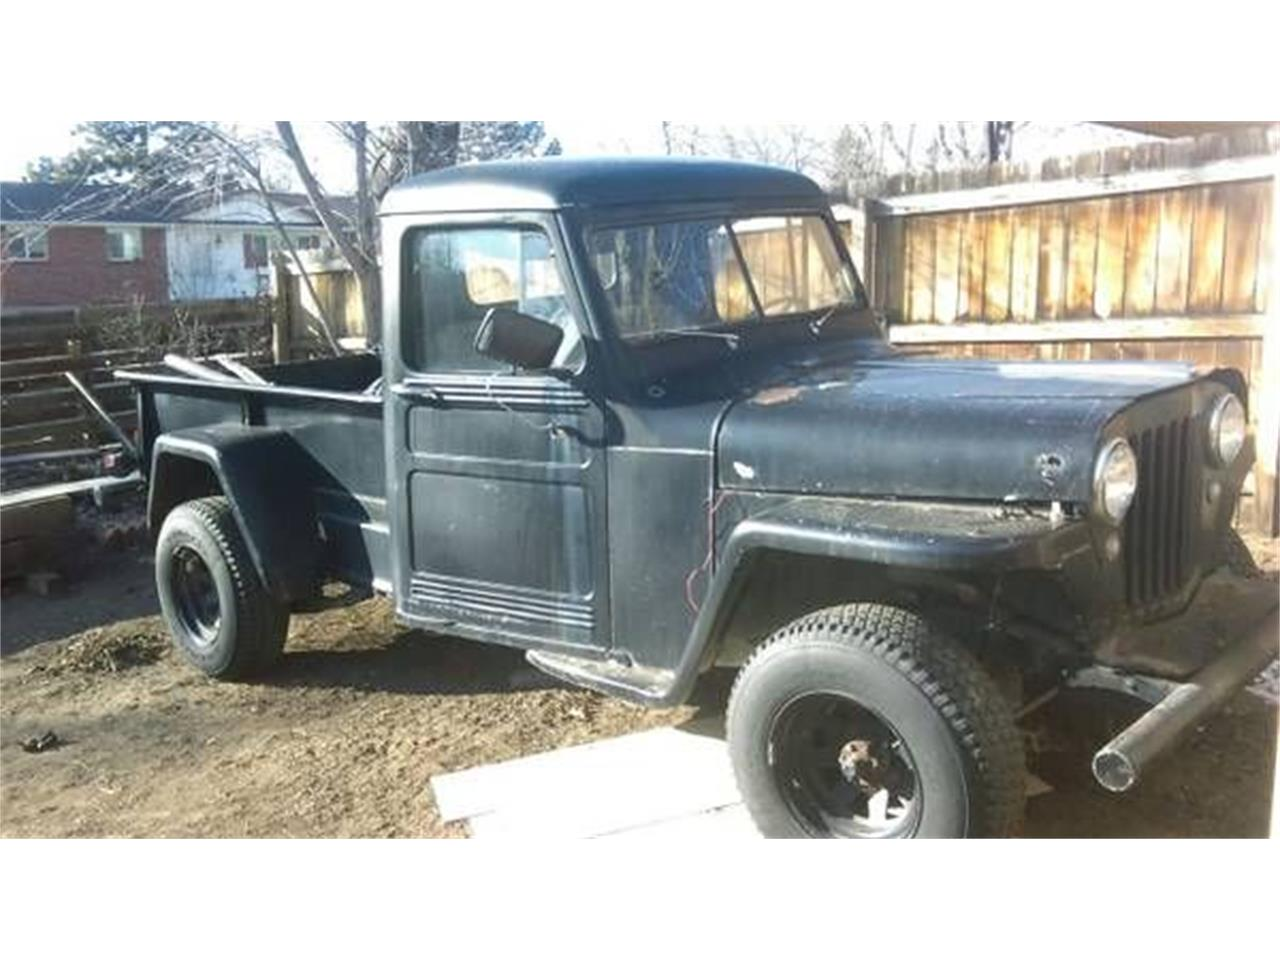 For Sale: 1952 Willys Jeep in Cadillac, Michigan